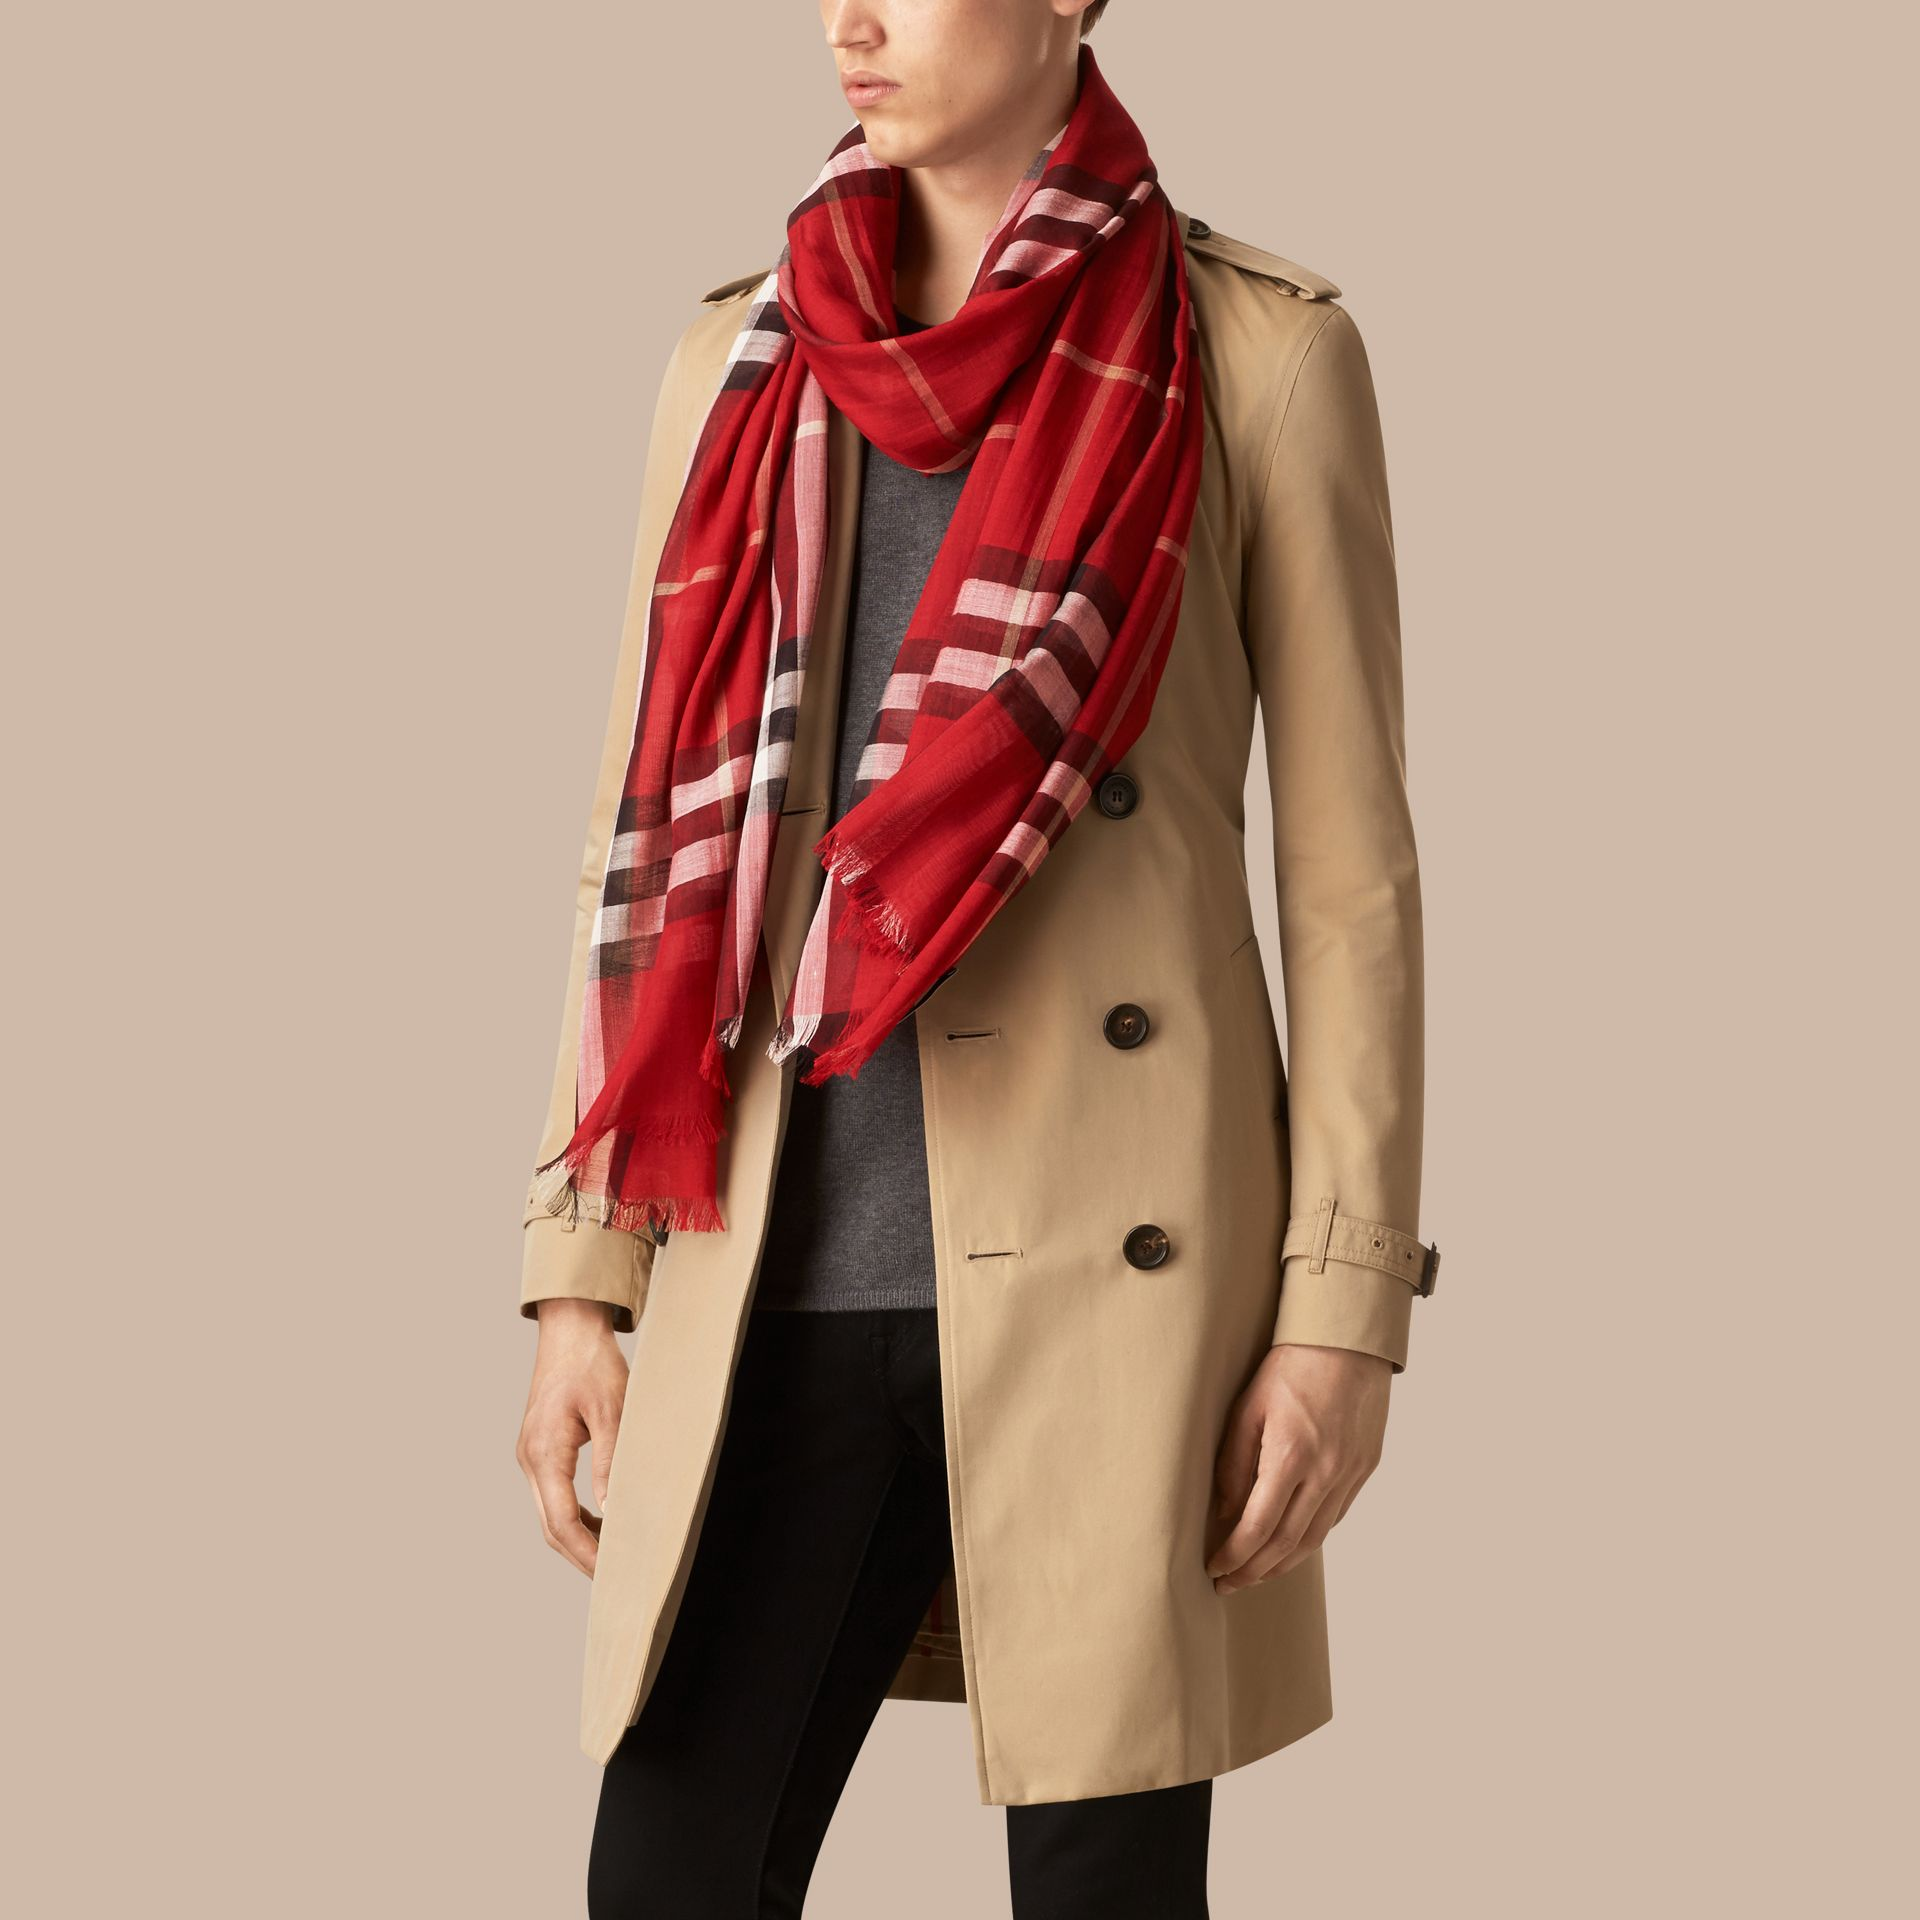 Lightweight Check Wool and Silk Scarf in Parade Red - Women | Burberry Australia - gallery image 3